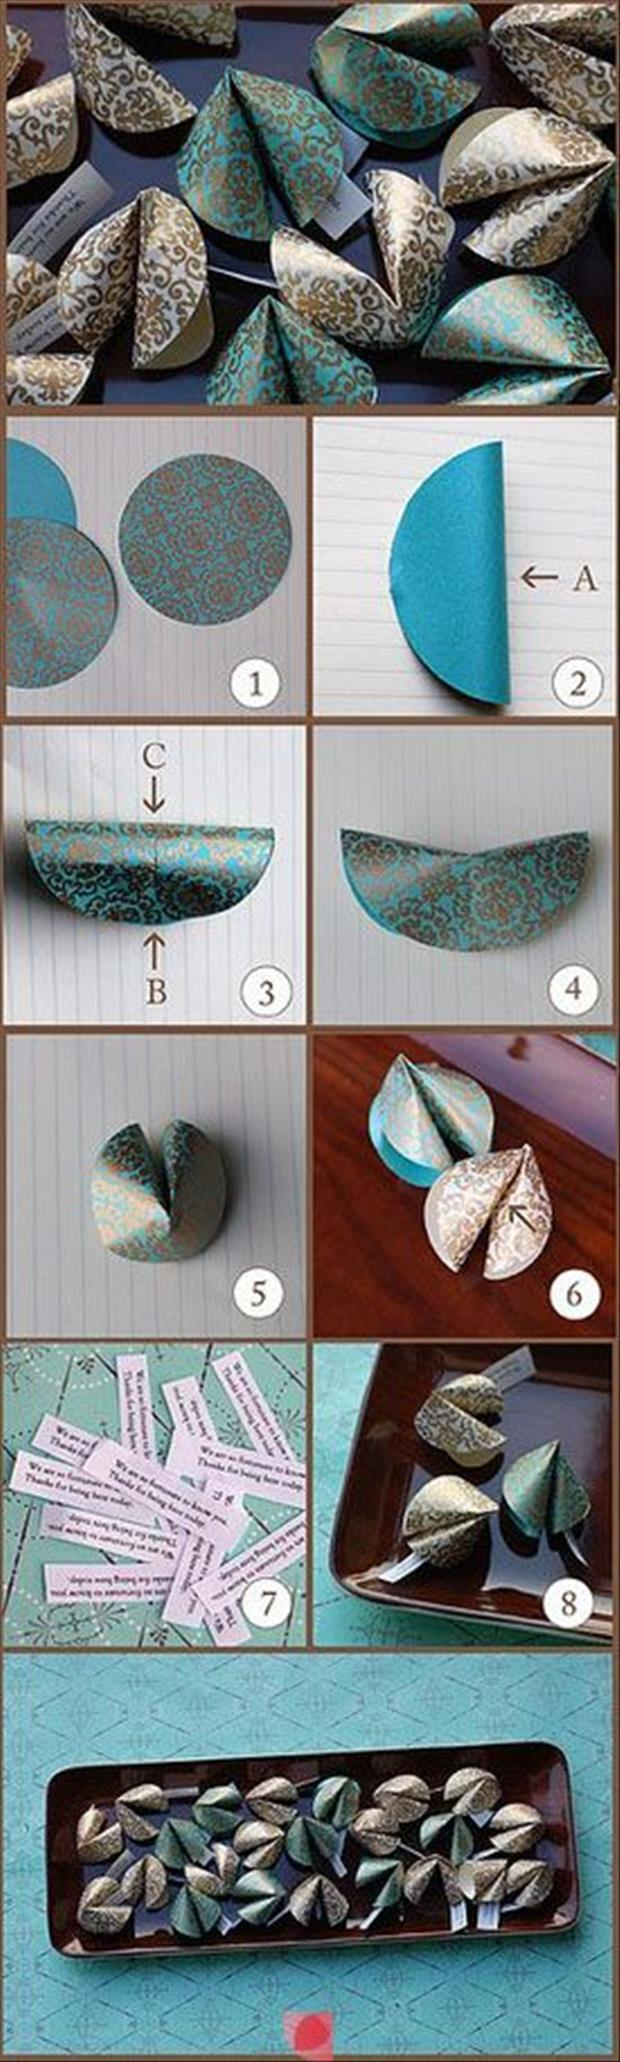 do it yourself crafts (14)